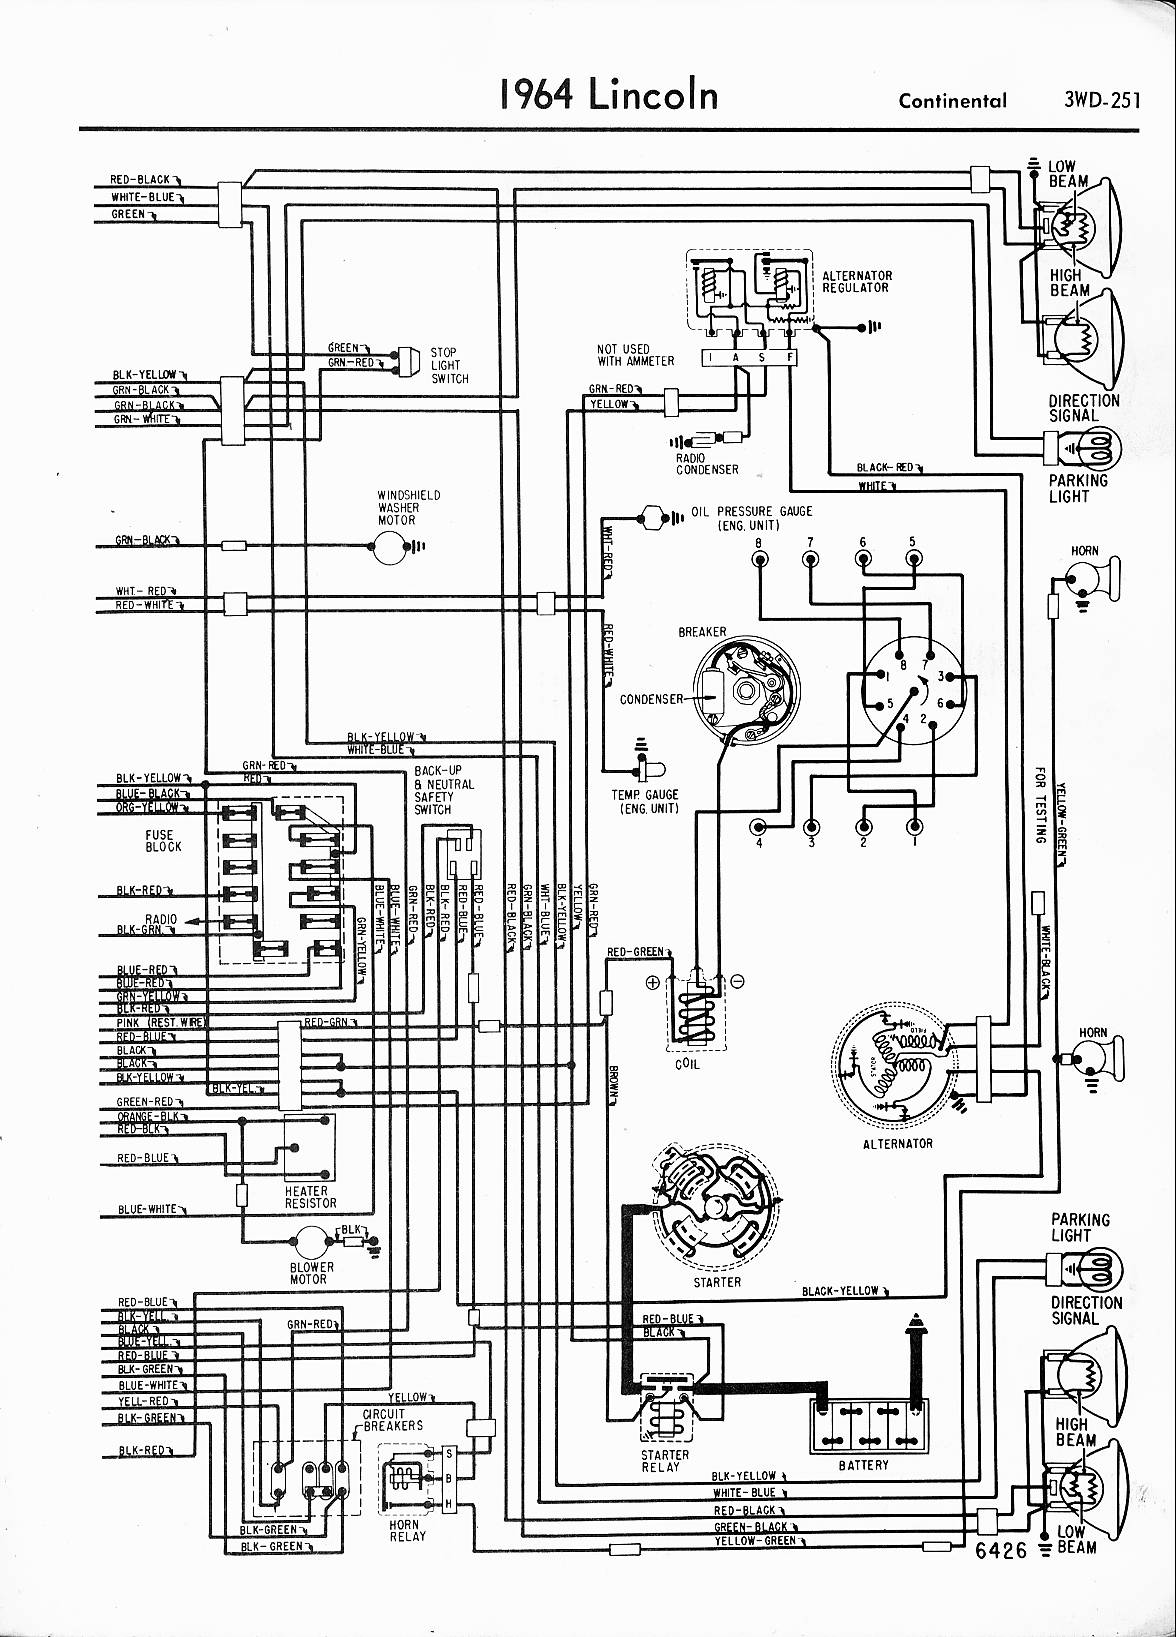 1995 Ford Thunderbird Fuse Diagram Wiring Library 01 Bmw X5 Vacuum Schematic Lincoln Diagrams 1957